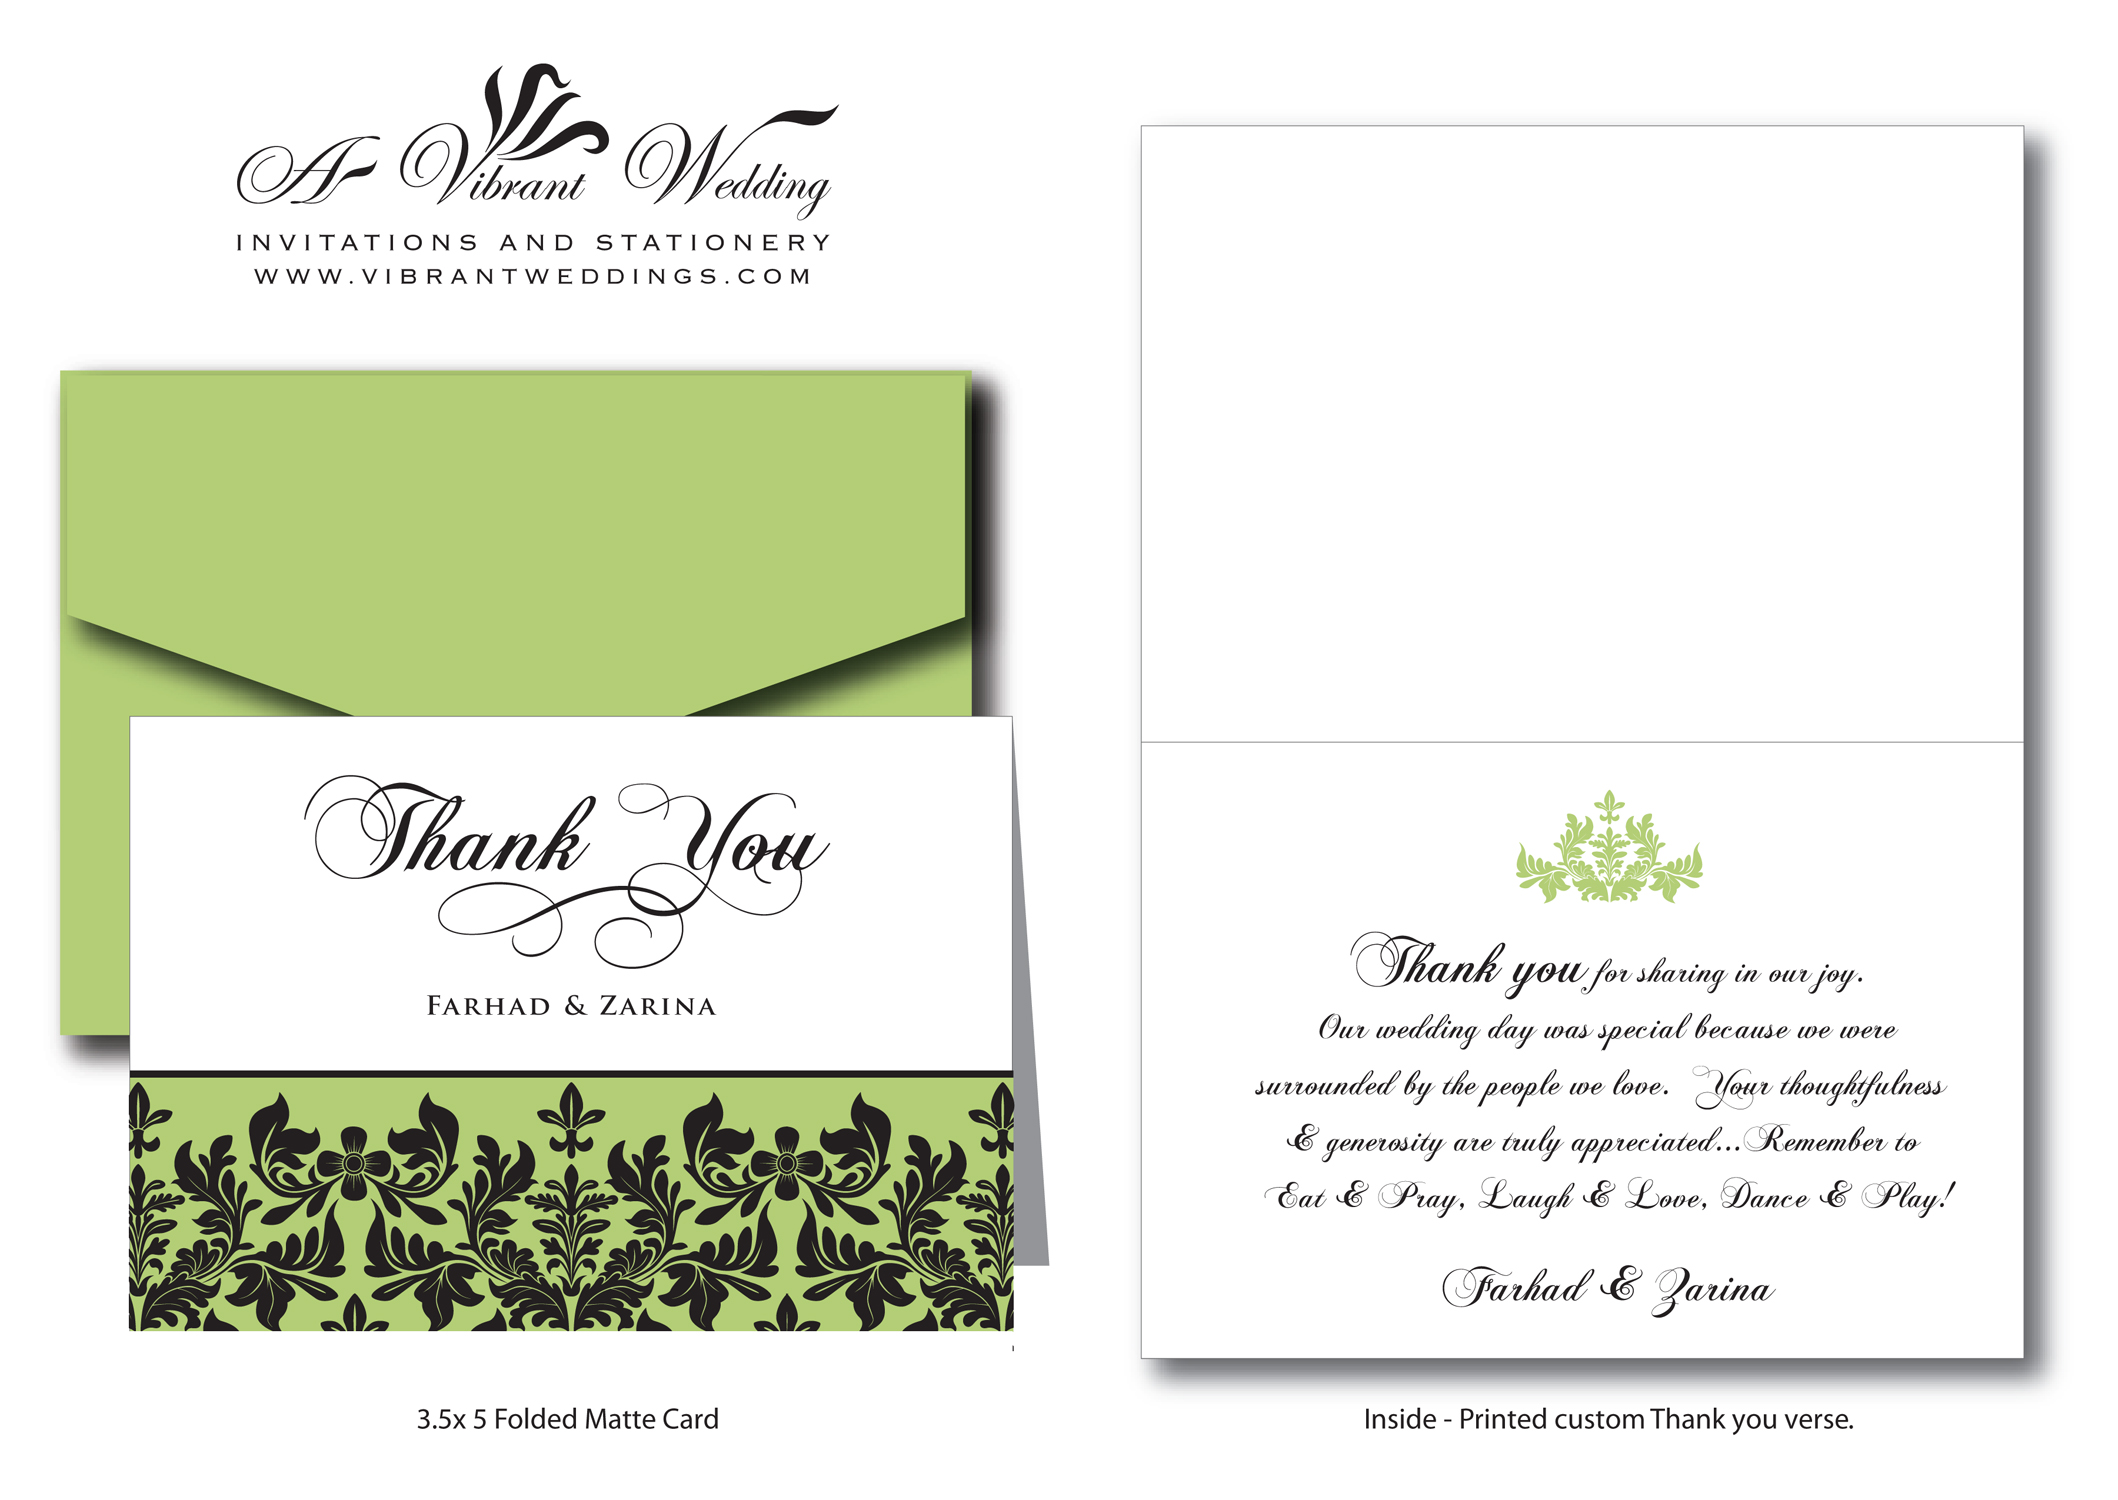 Thank You Wording A Vibrant Wedding